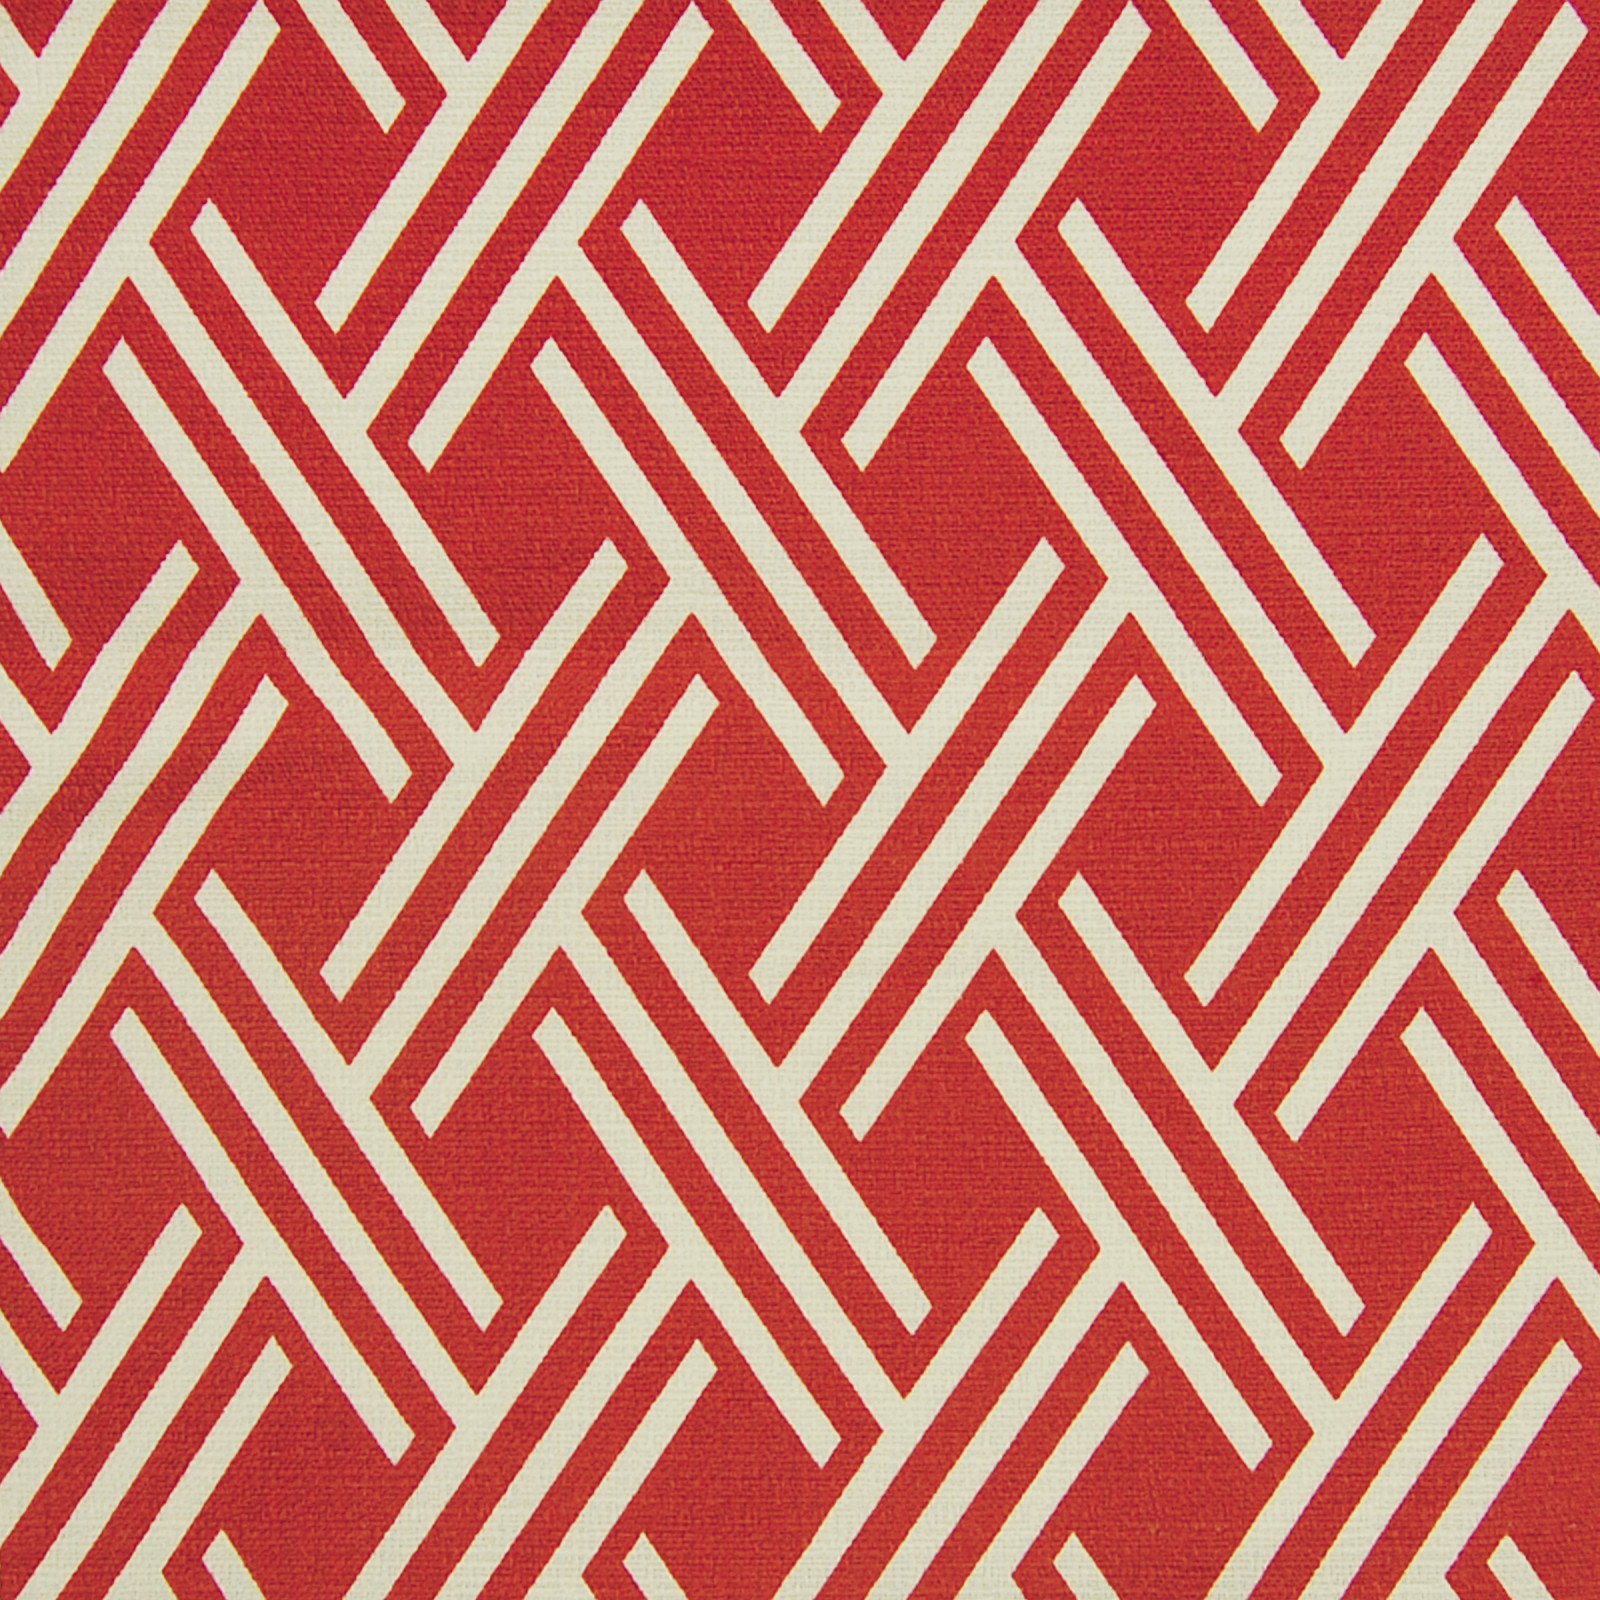 Rust Red Geometric Cotton Upholstery Fabric